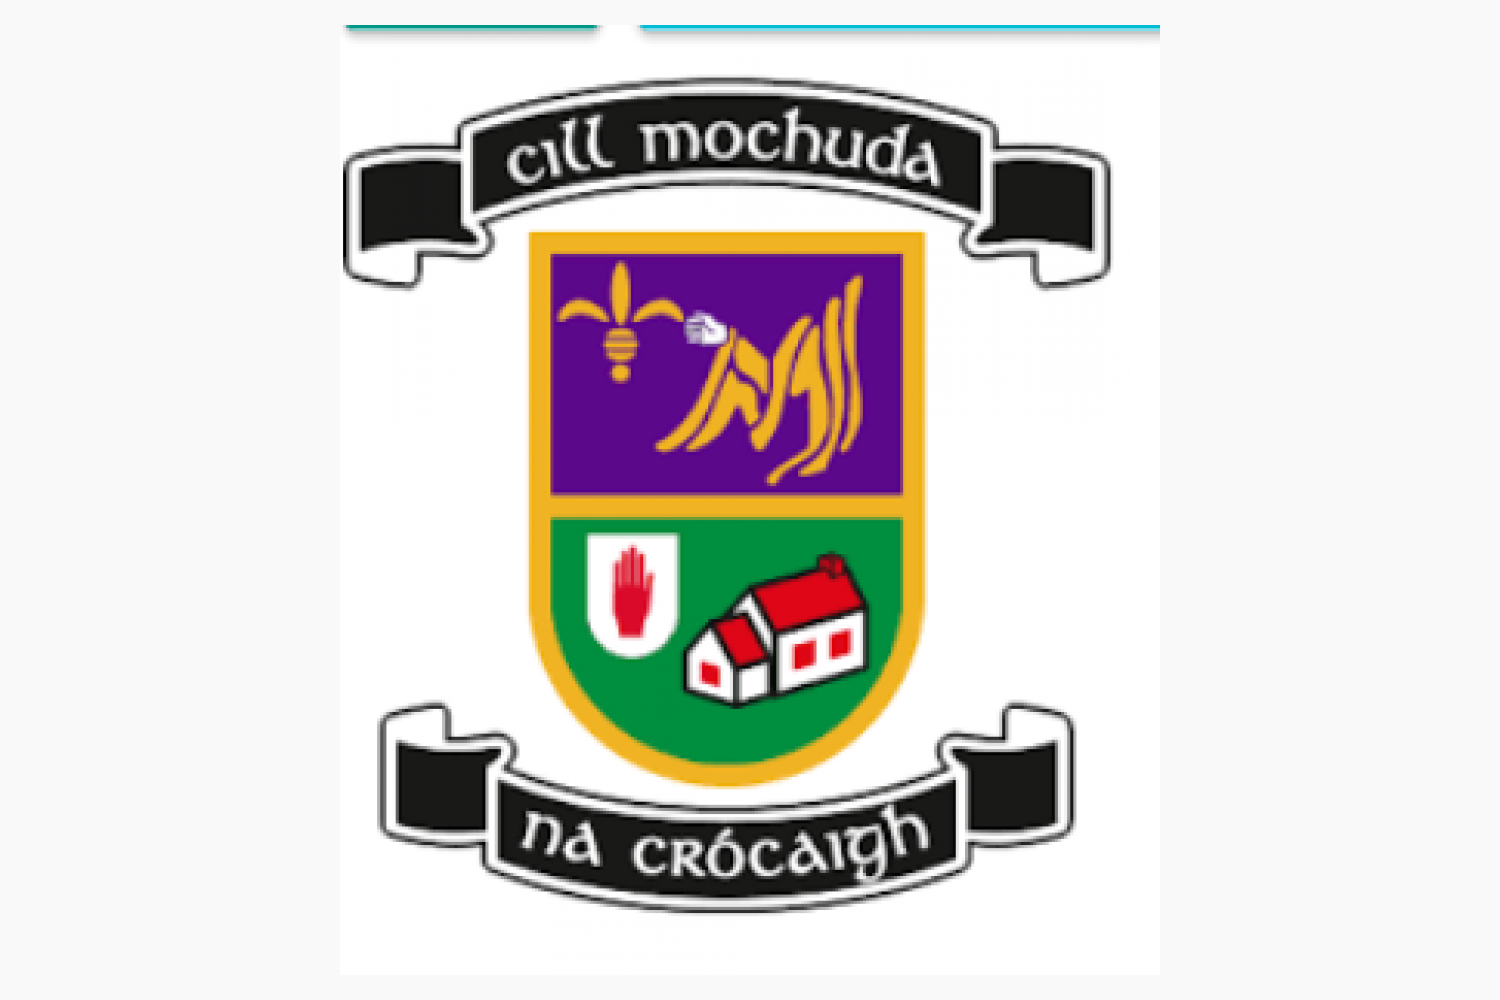 Application form for the Londis 2019 Kilmacud Crokes Football 7's